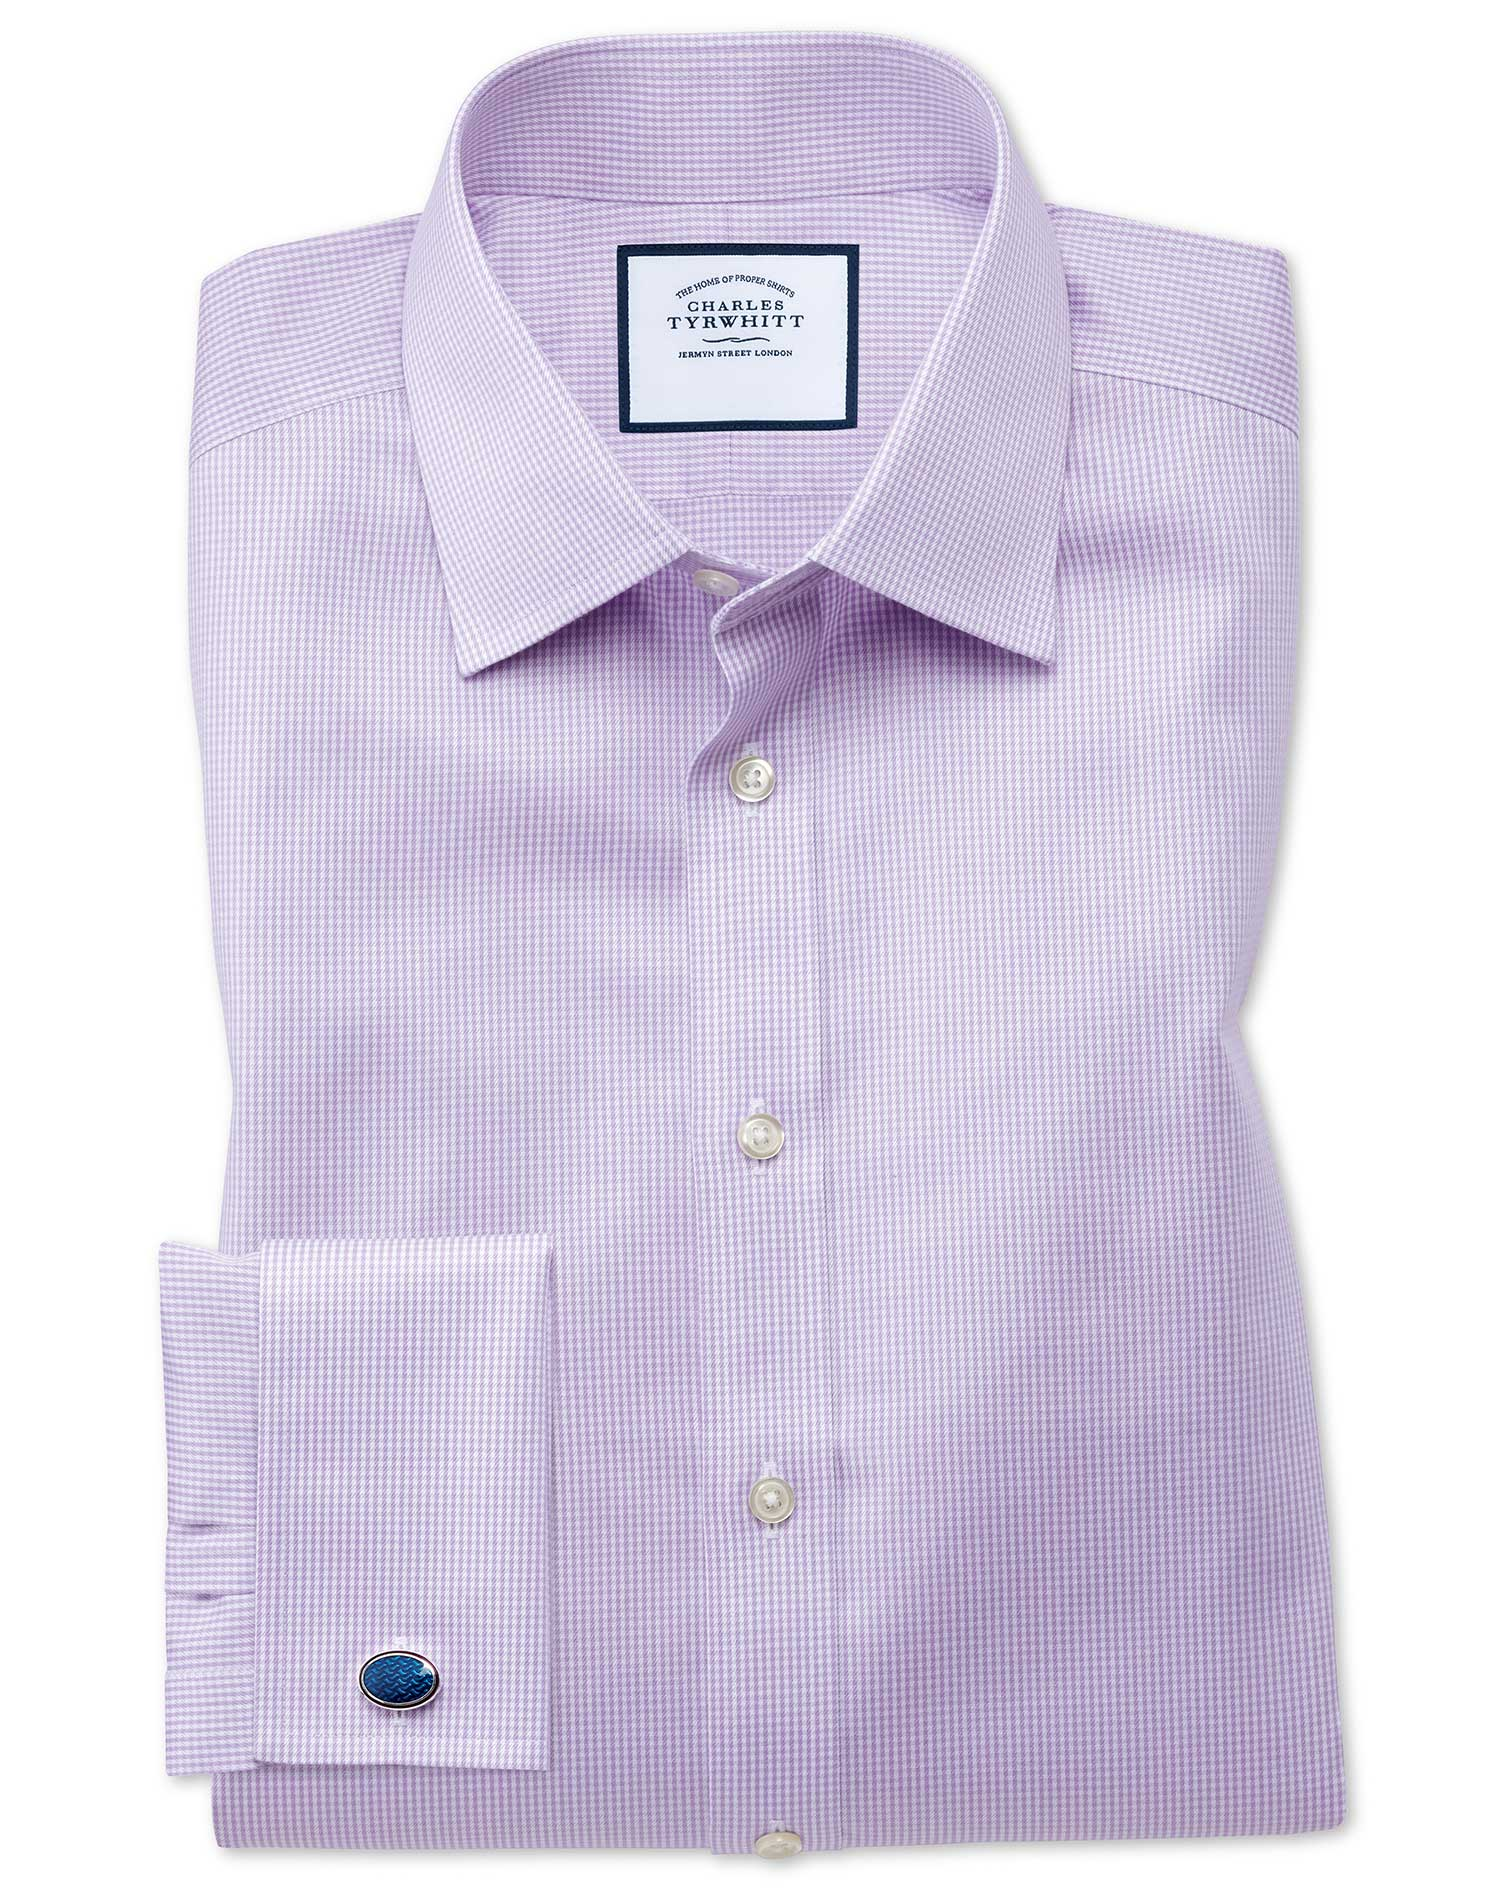 Slim Fit Non-Iron Puppytooth Lilac Cotton Formal Shirt Double Cuff Size 17/37 by Charles Tyrwhitt